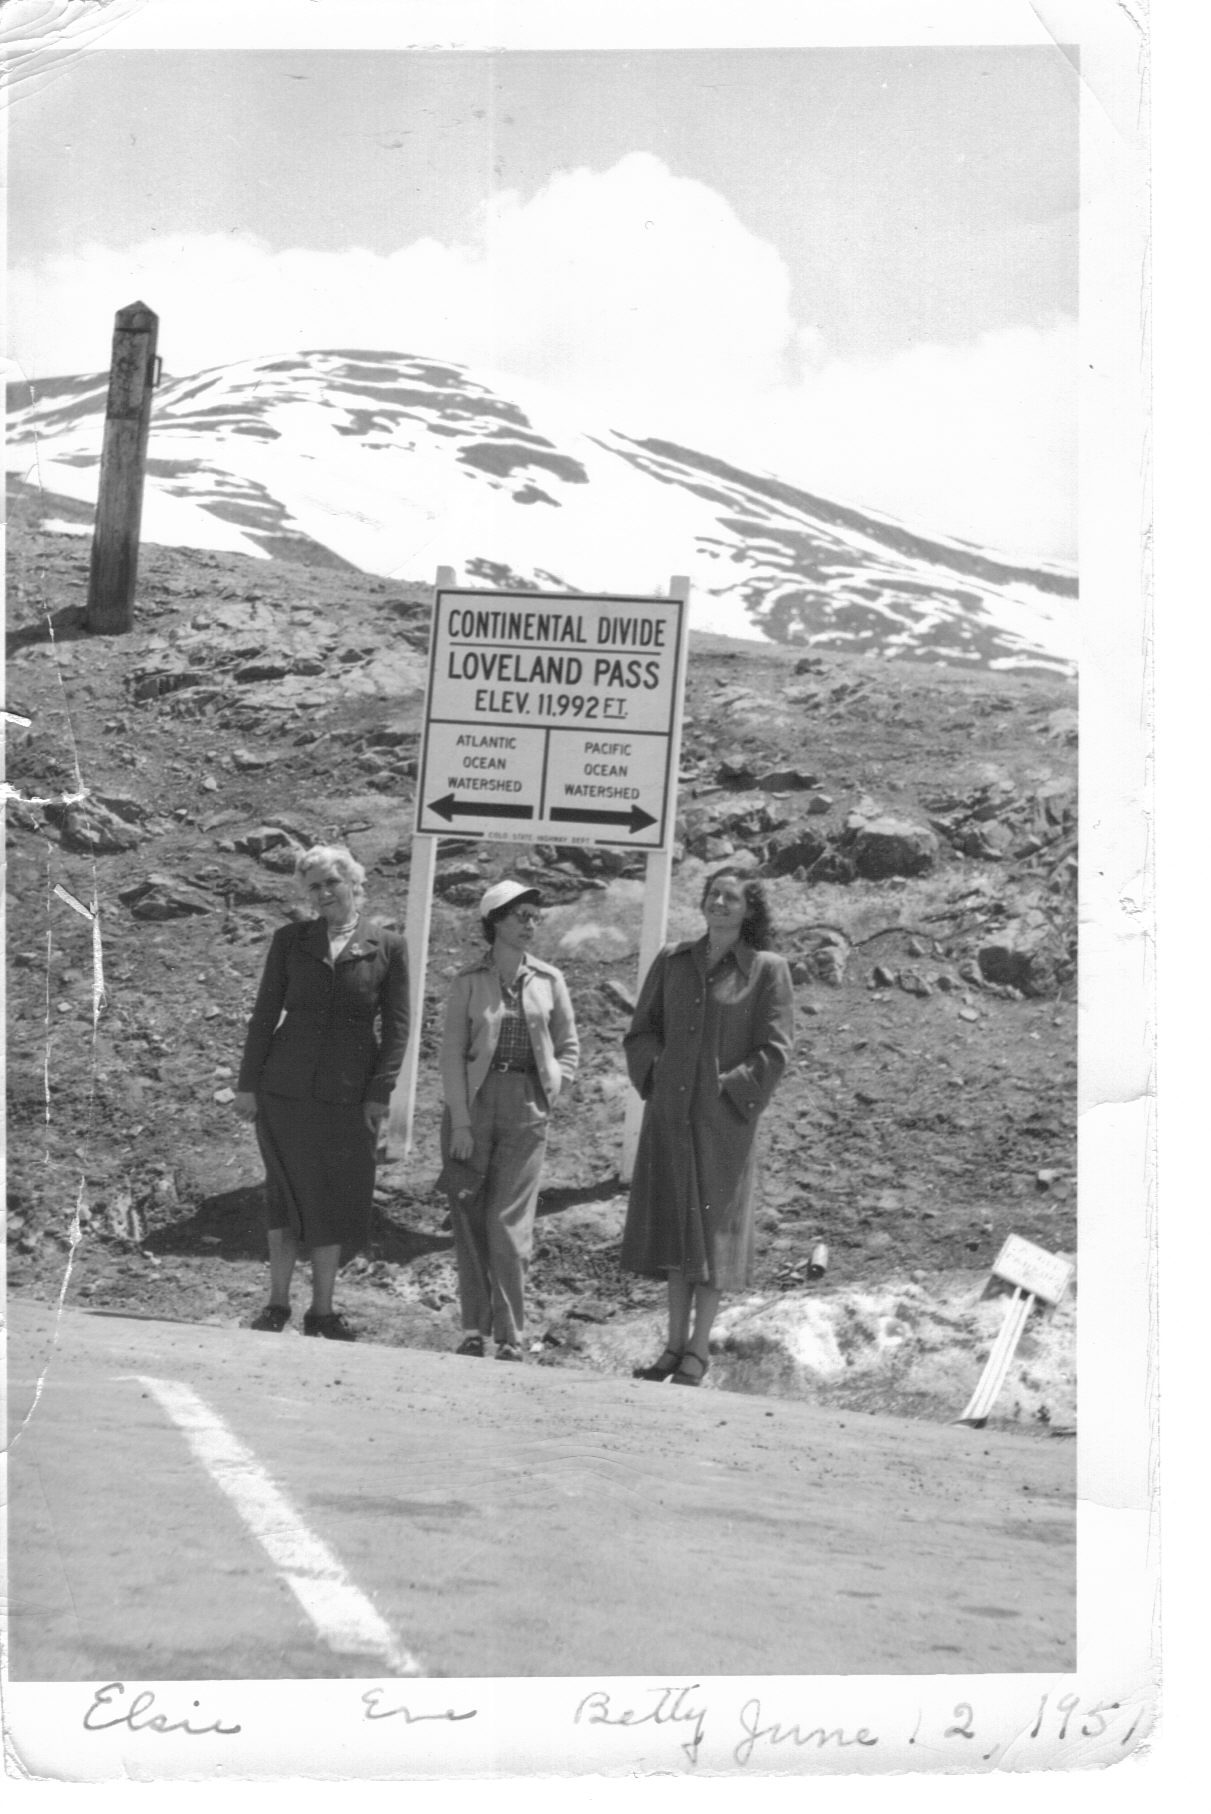 Three Frisco women- Elsie, Eve, and Betty- stand on the Continental Divide at Loveland Pass. Circa 1951.